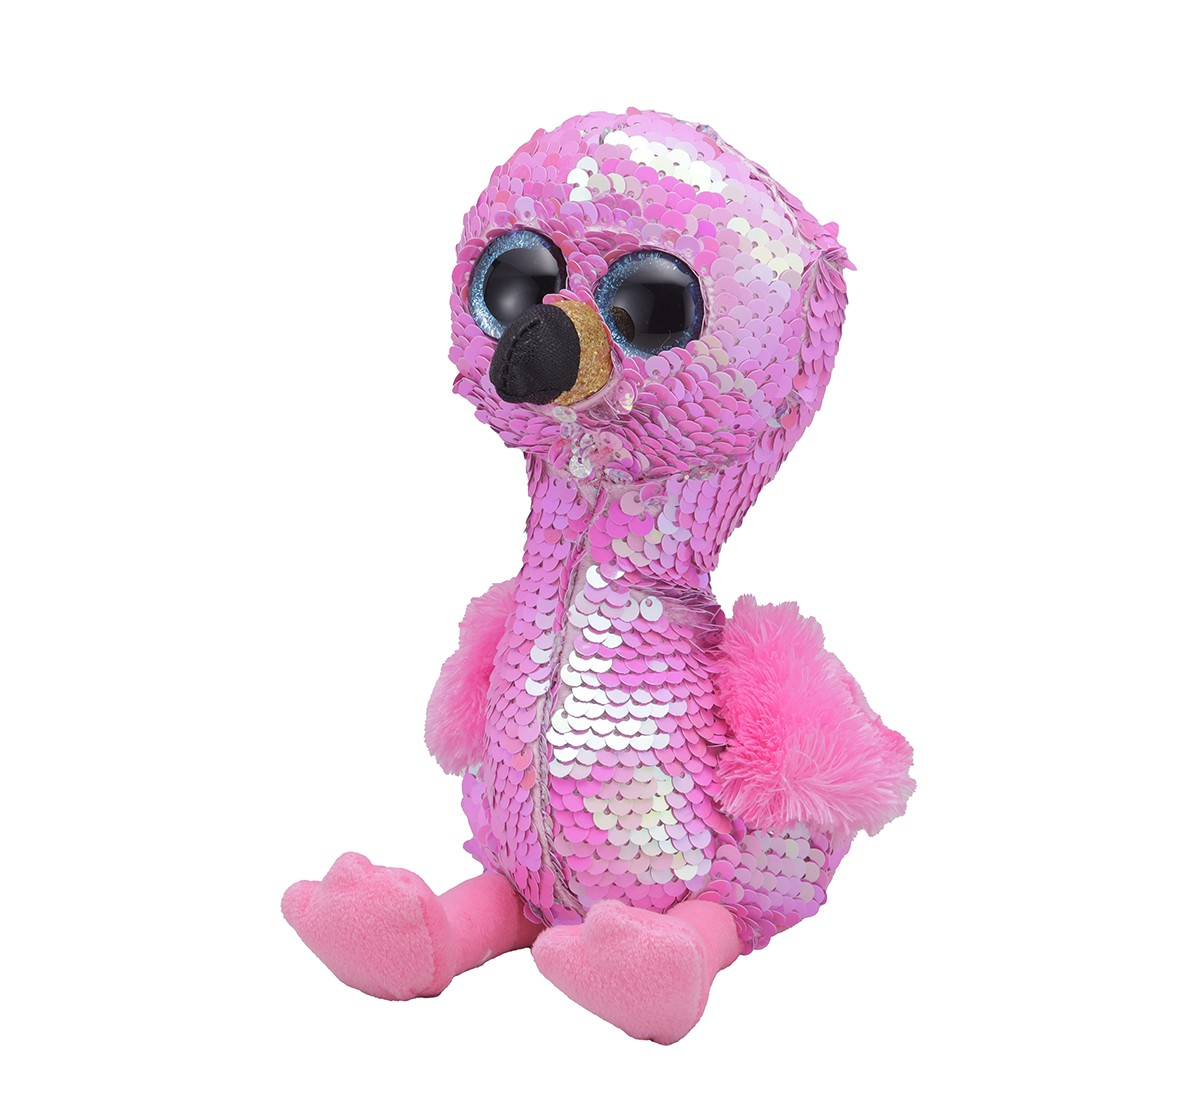 Ty PINKY - Flamingo Regular Flippables Quirky Soft Toys for Kids age 3Y+ - 15 Cm